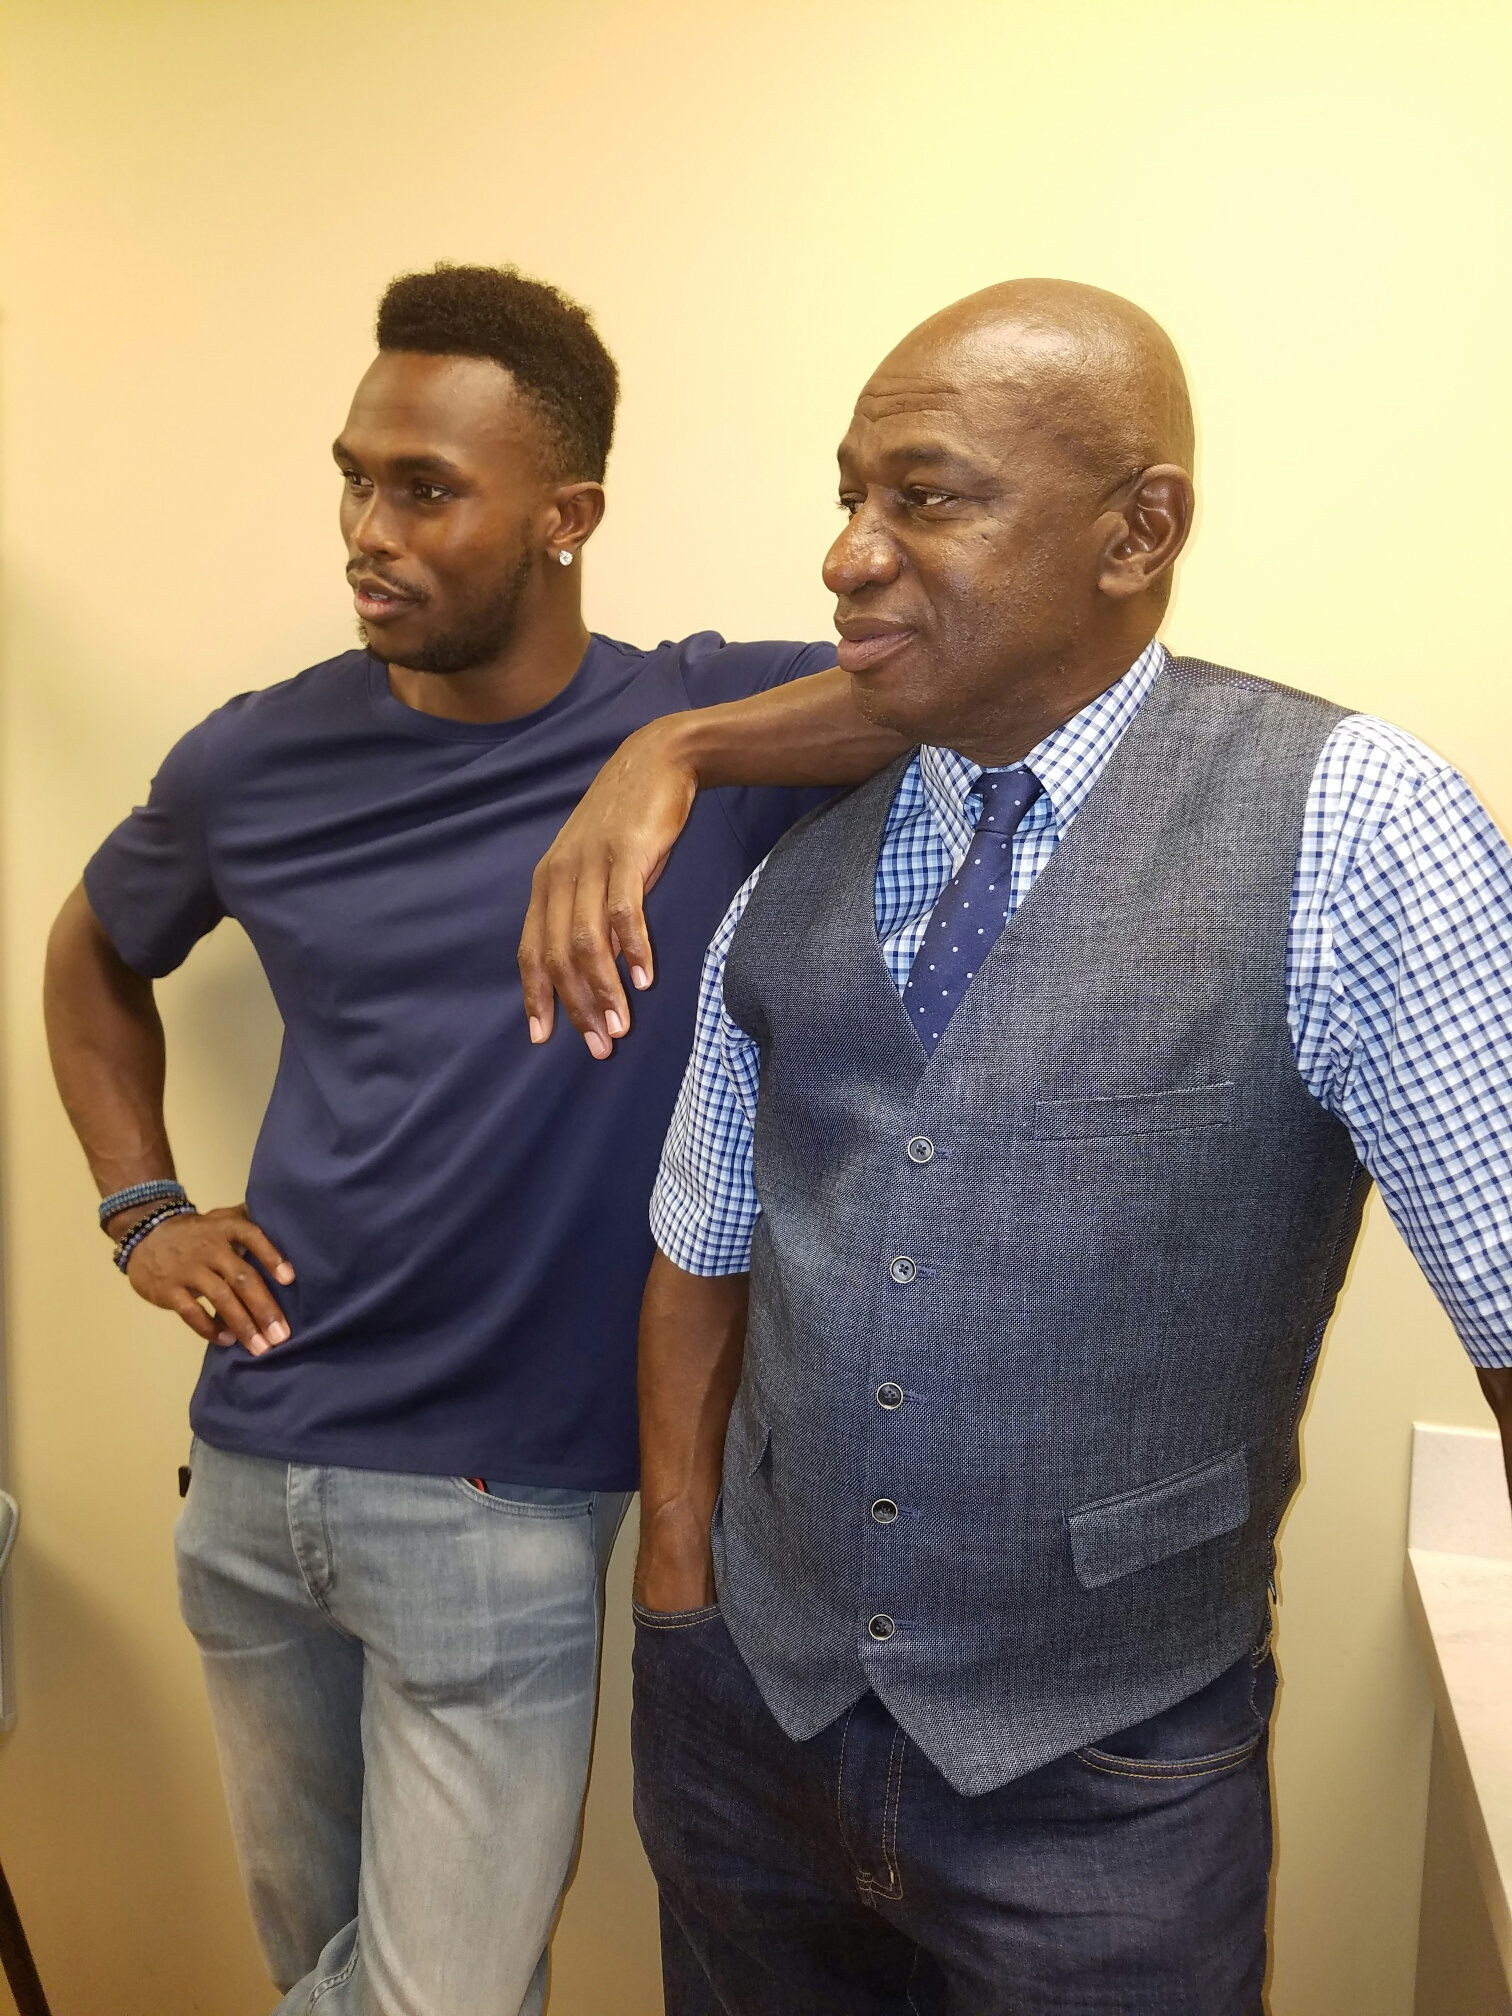 Nfl Superstars Julio Jones And Roy Green Benefit Players Health In Atlanta Screening With Pro Player Health Alliance And Dr Bill Williams